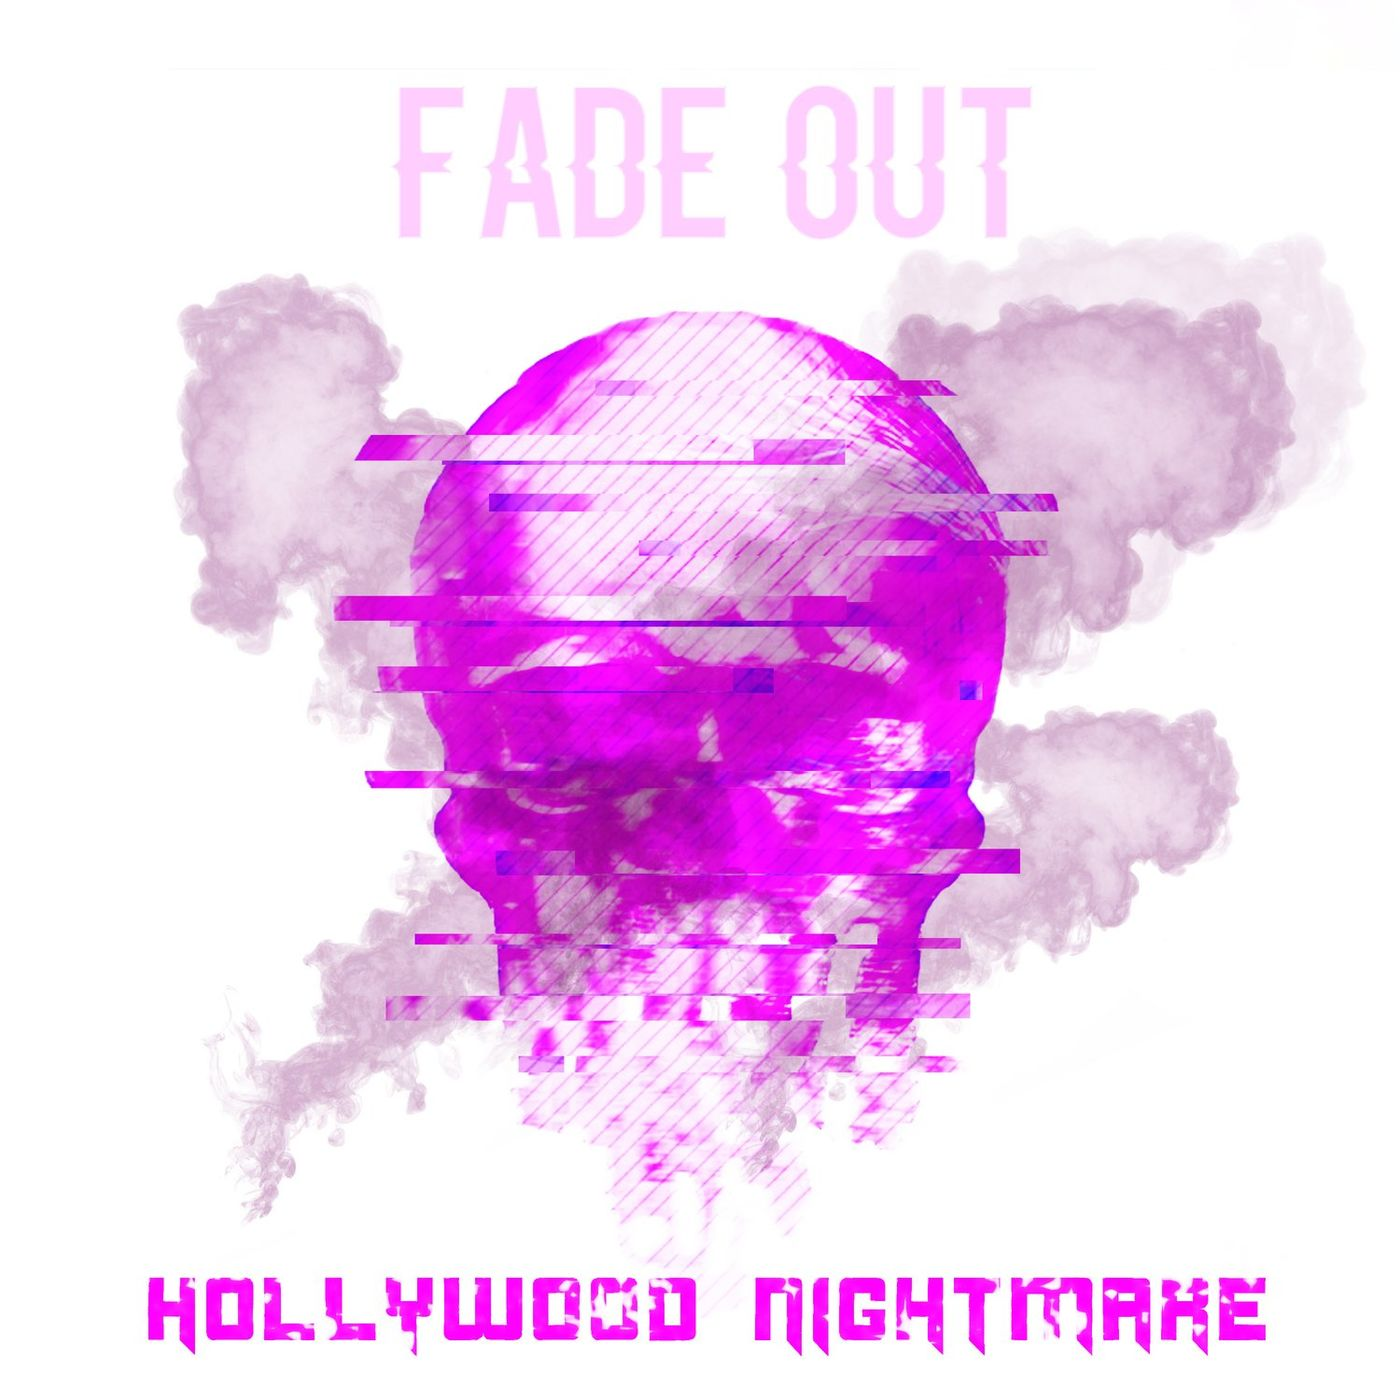 Hollywood Nightmare - Fade Out [single] (2021)